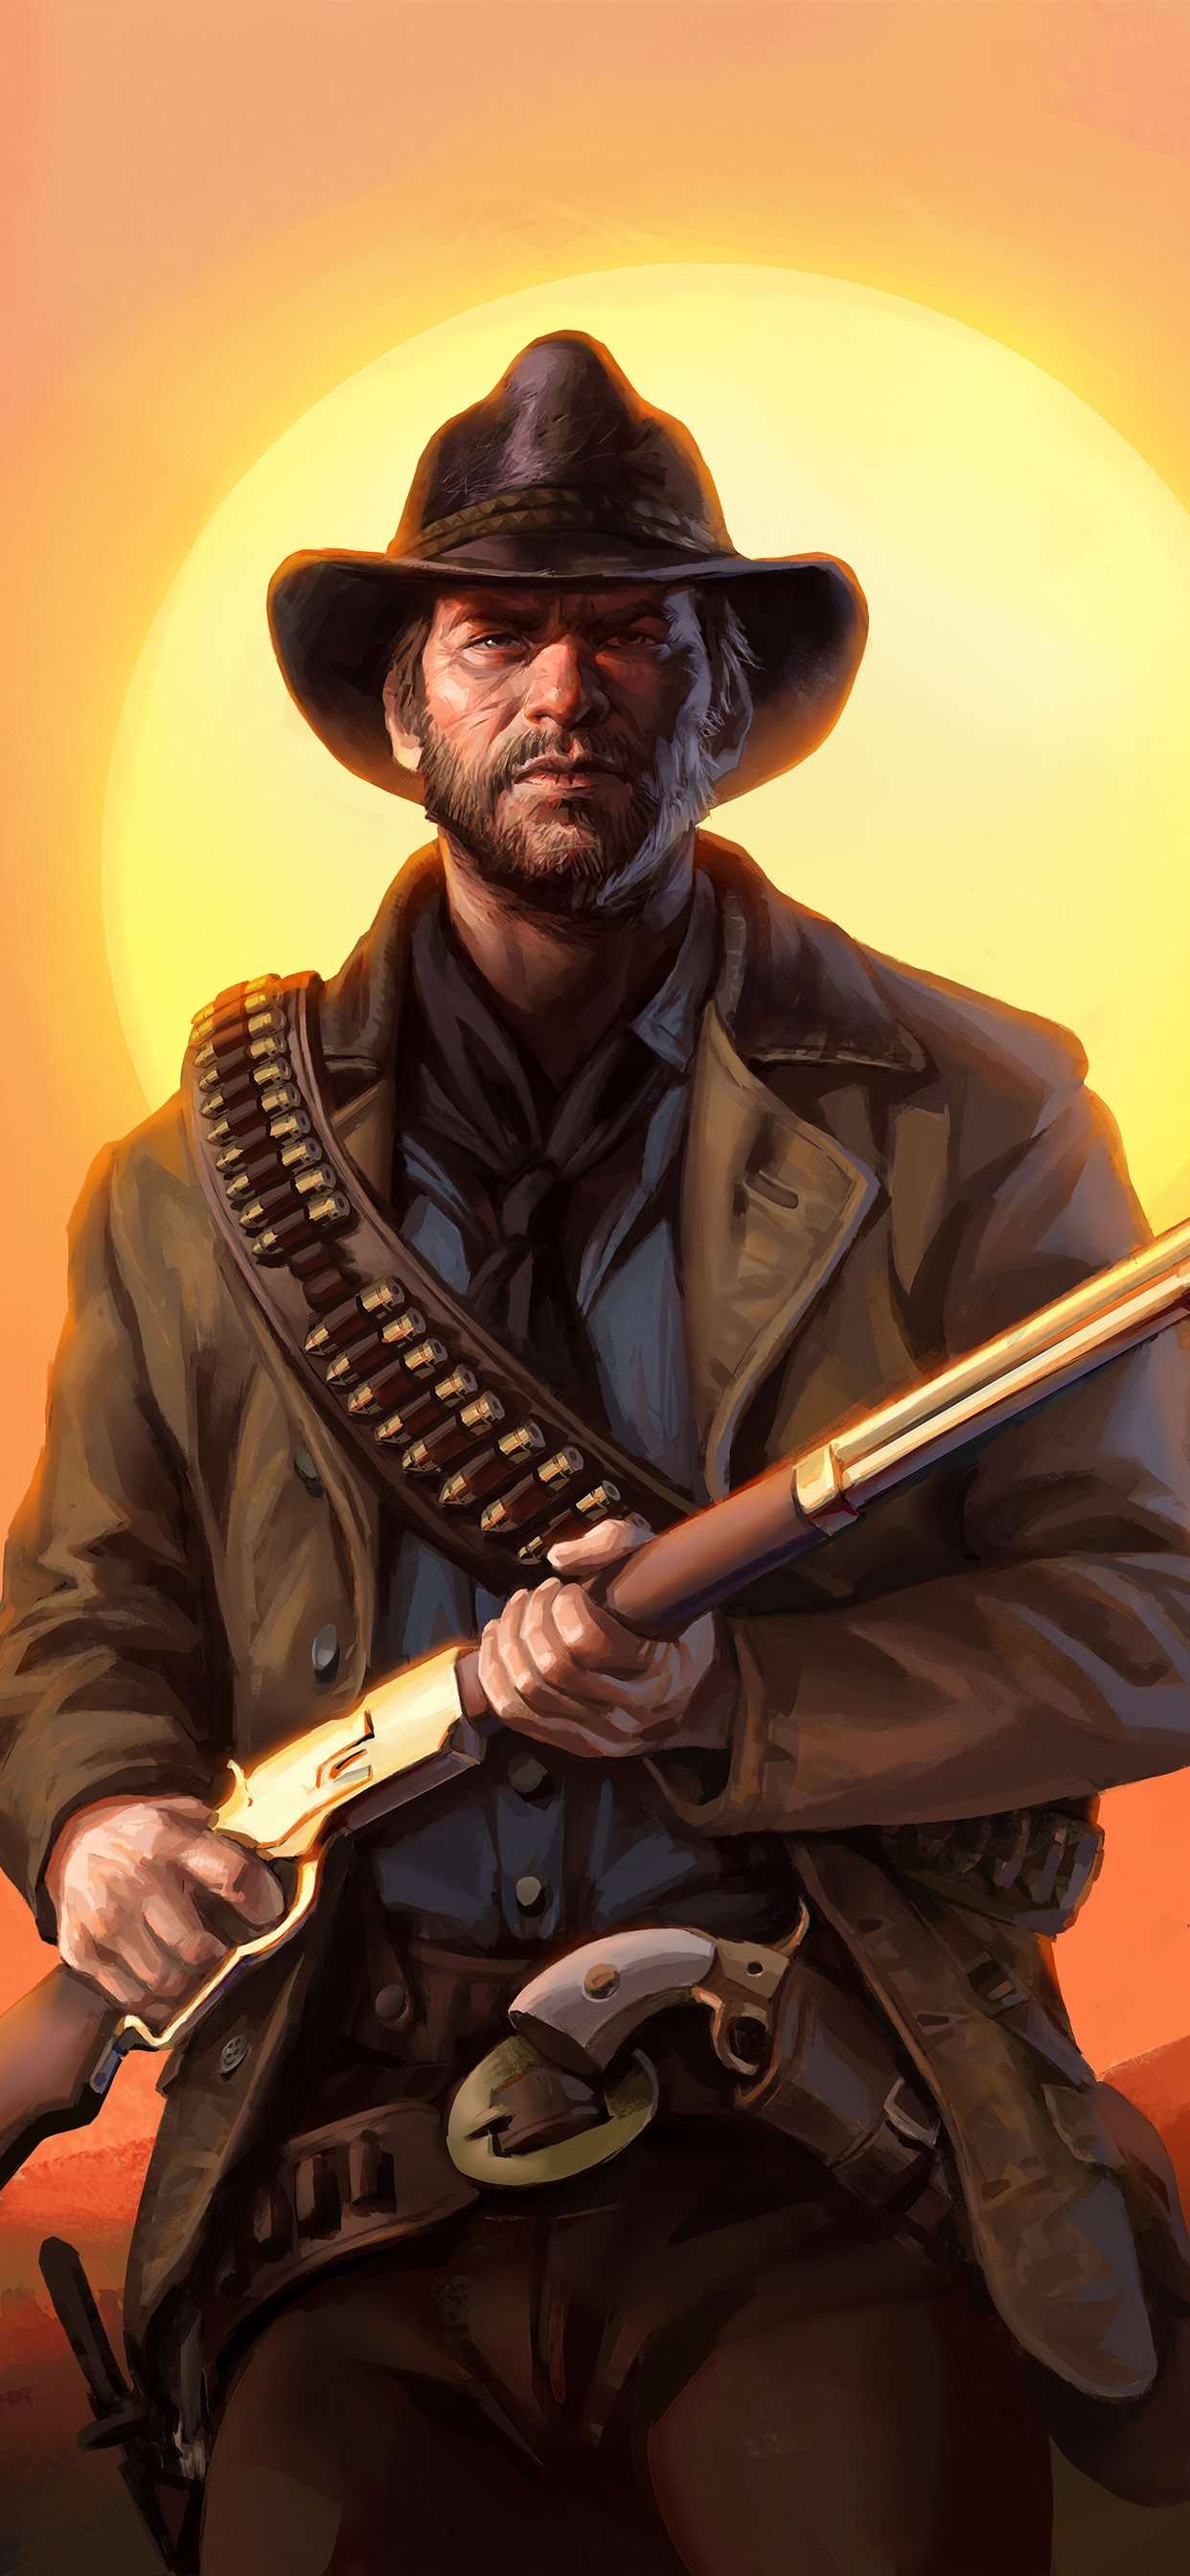 Red Dead Redemption Art Iphone X Wallpapers Free Download